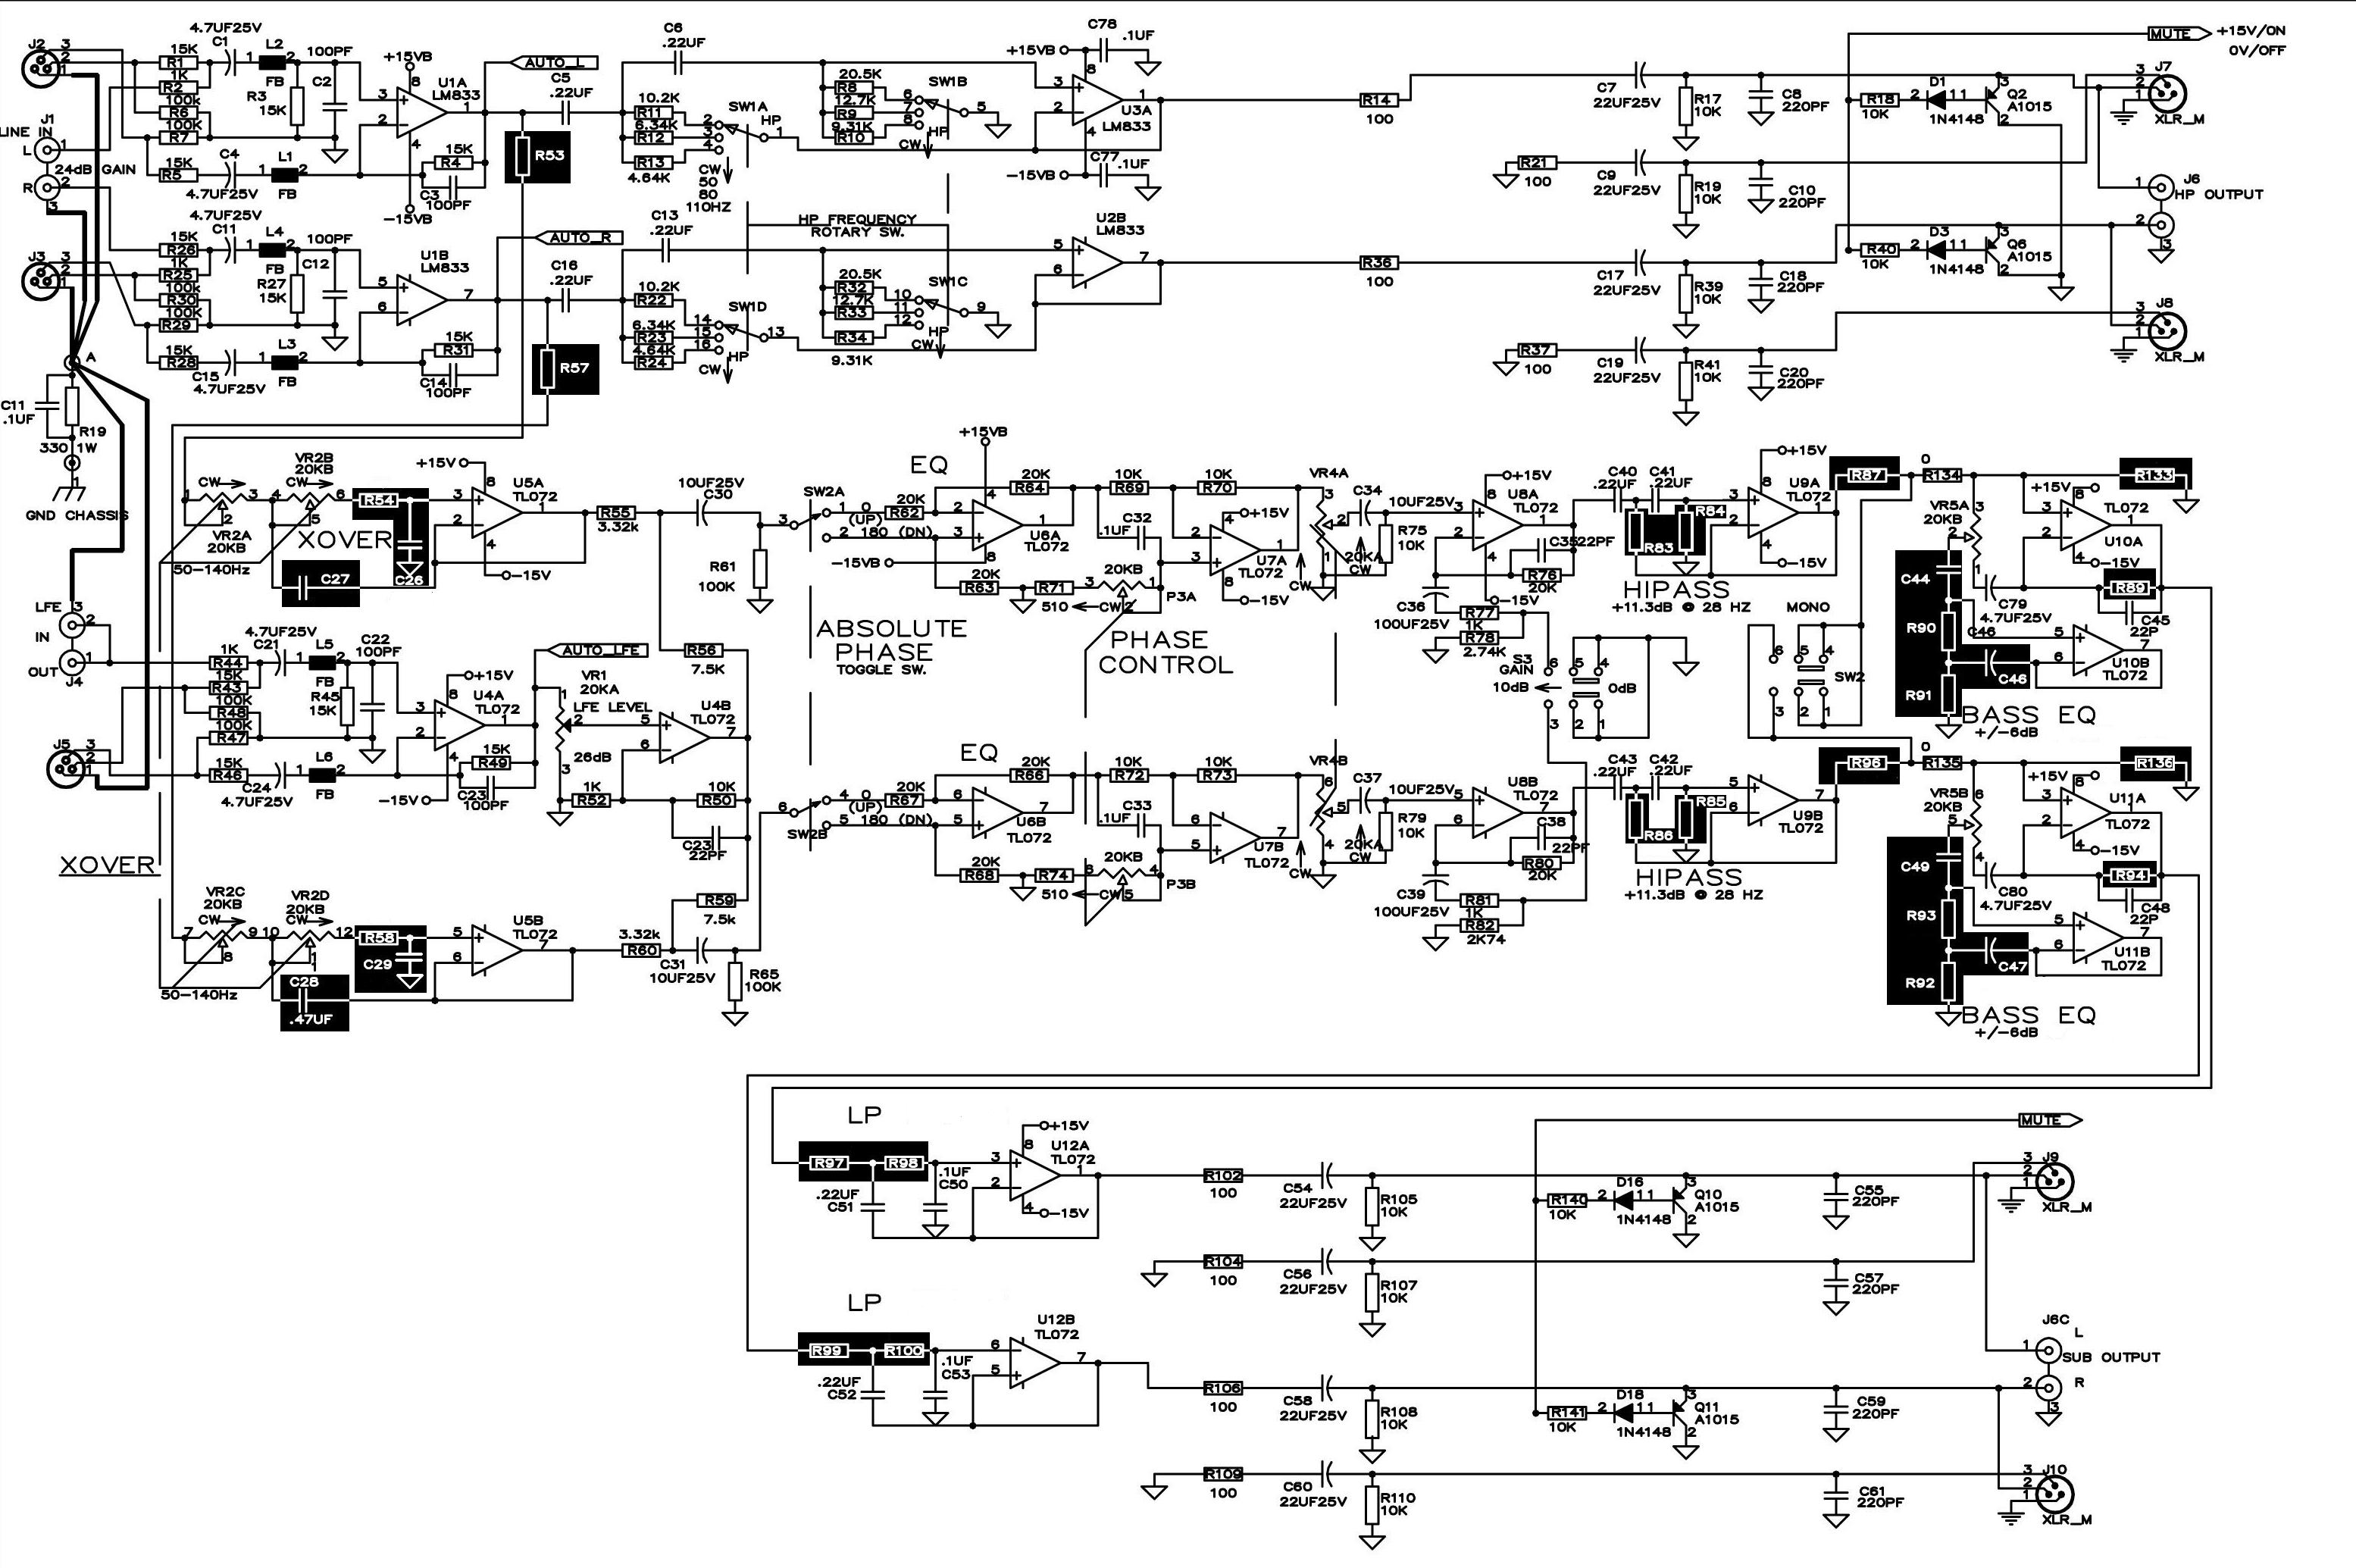 Amplifier And Crossover Wiring Diagram Schematic Diagrams Amp Behringer Auto Electrical U2022 Pa